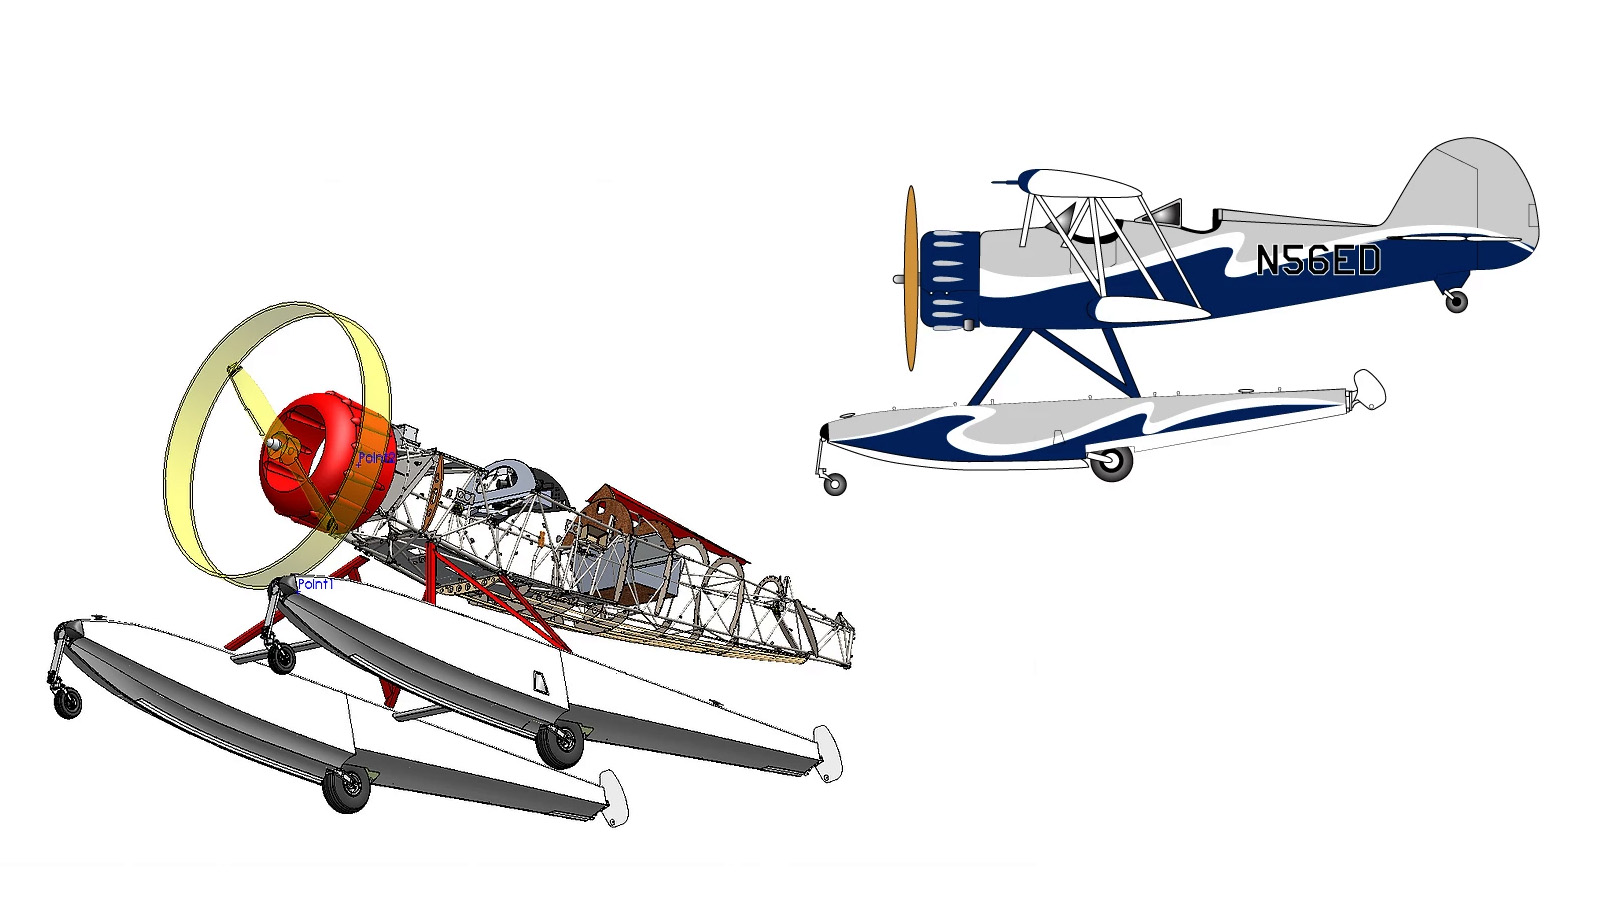 Drawings courtesy of Waco Aircraft Corp.